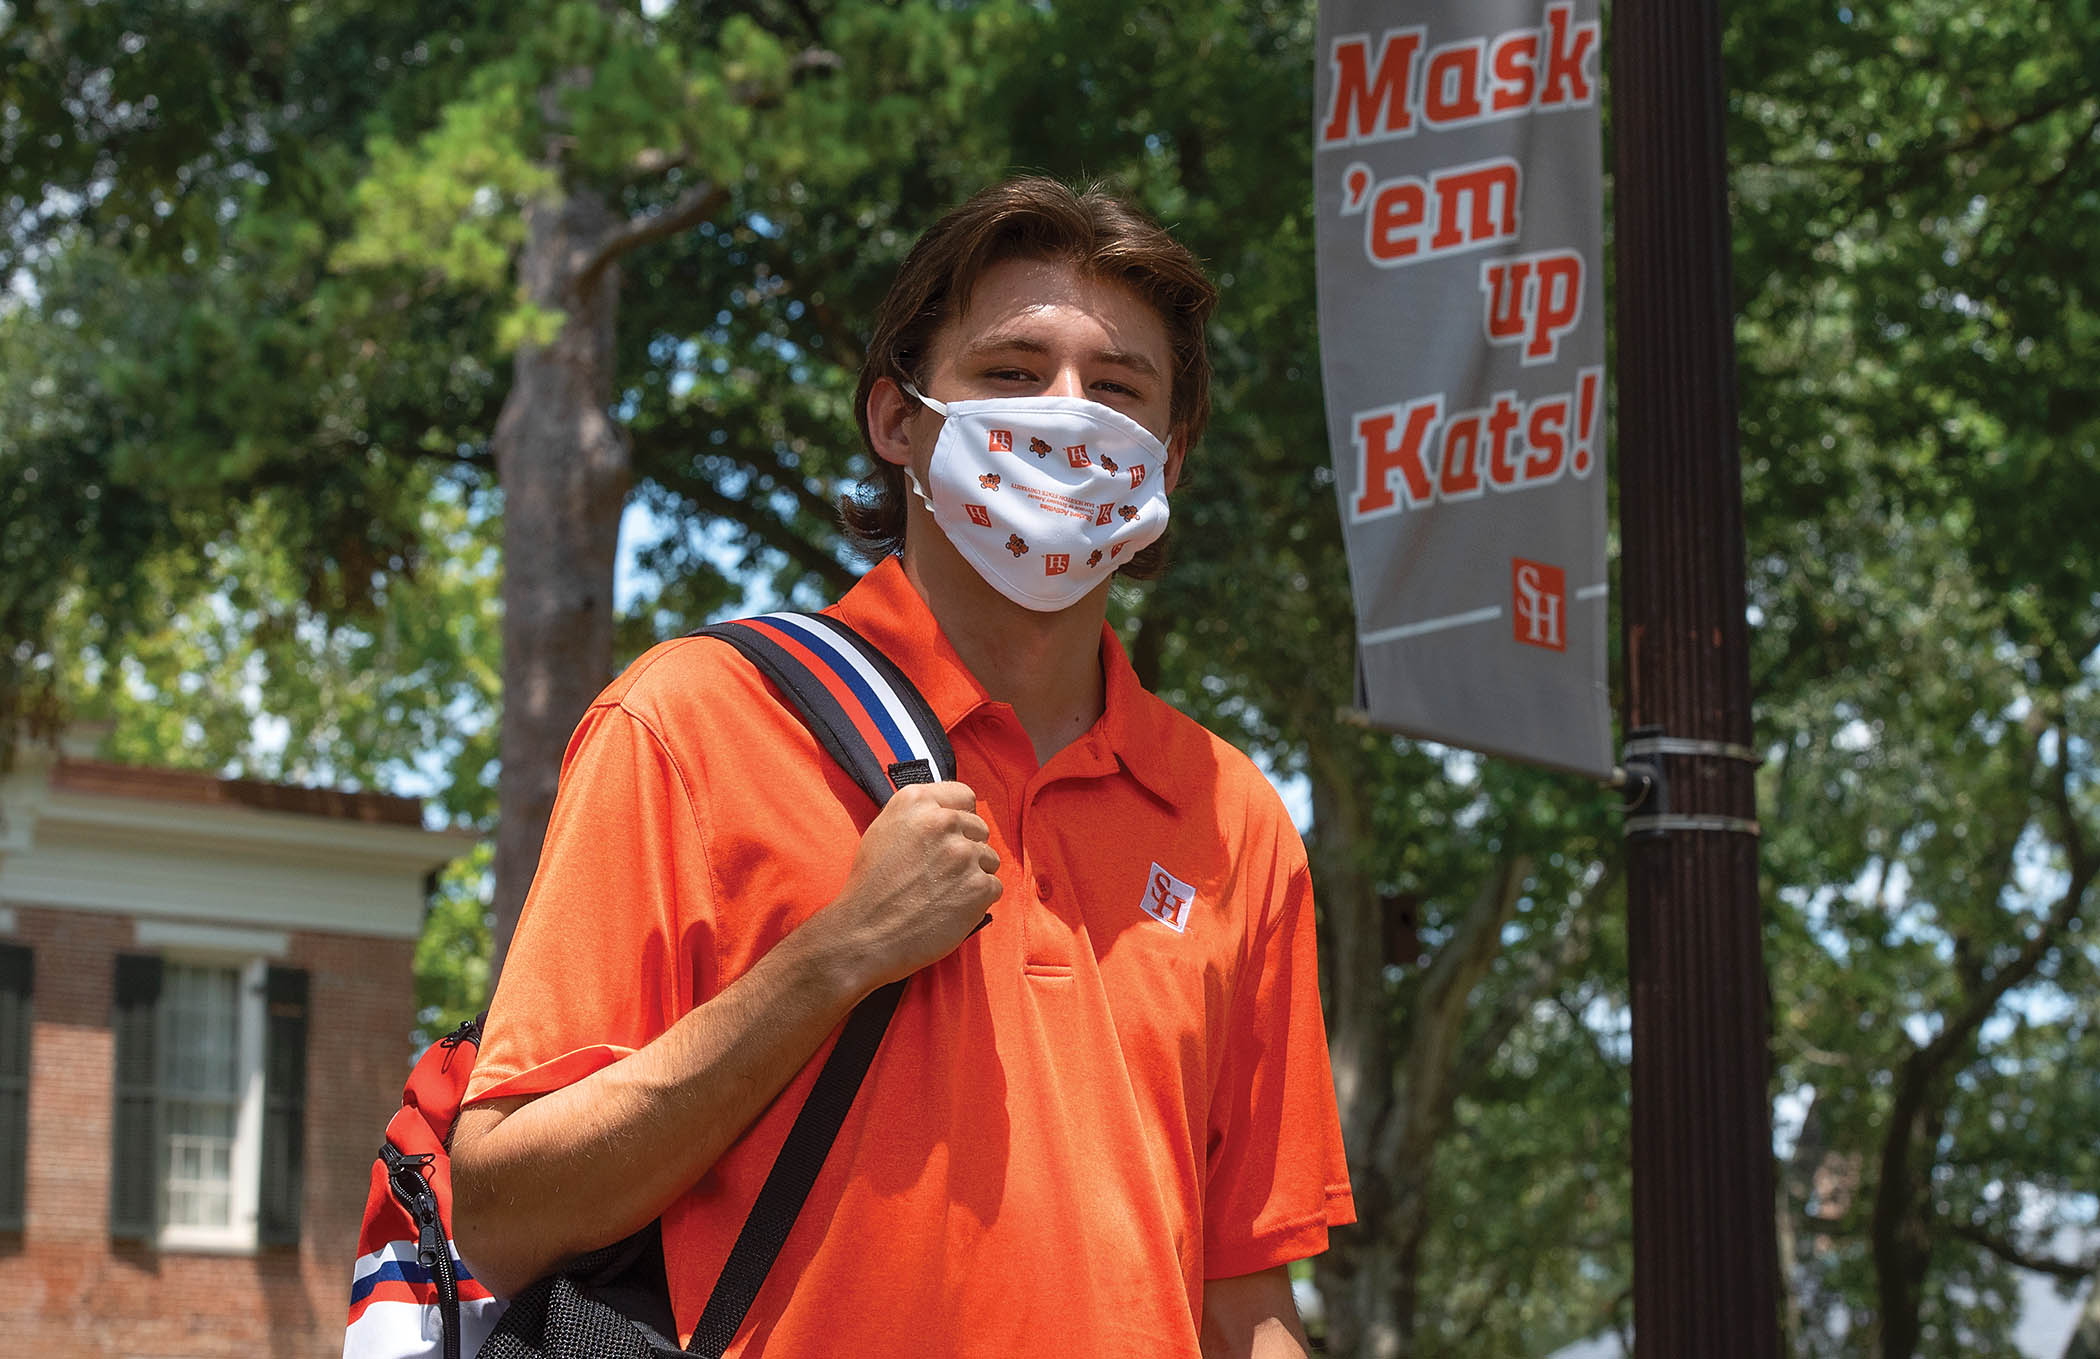 Student on campus wearing a mask